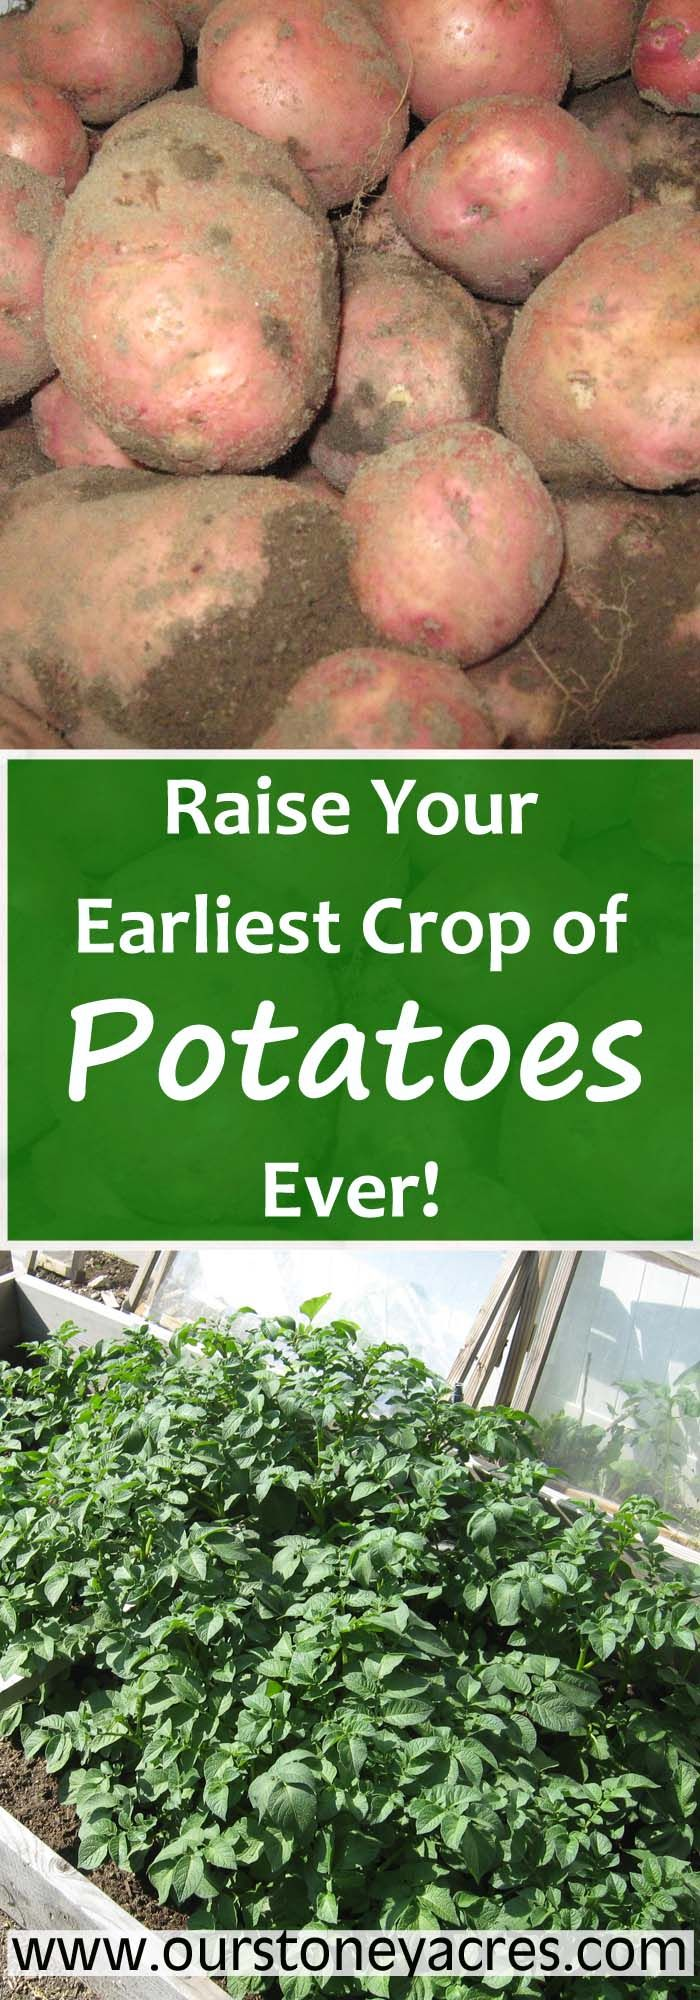 A simple cold frame is all you need to to have early potatoes in the spring. You can plant early potatoes in mid March and they will be ready in June. Potatoes are one of the best crops to grow in your vegetable garden if you want to be self sufficient!